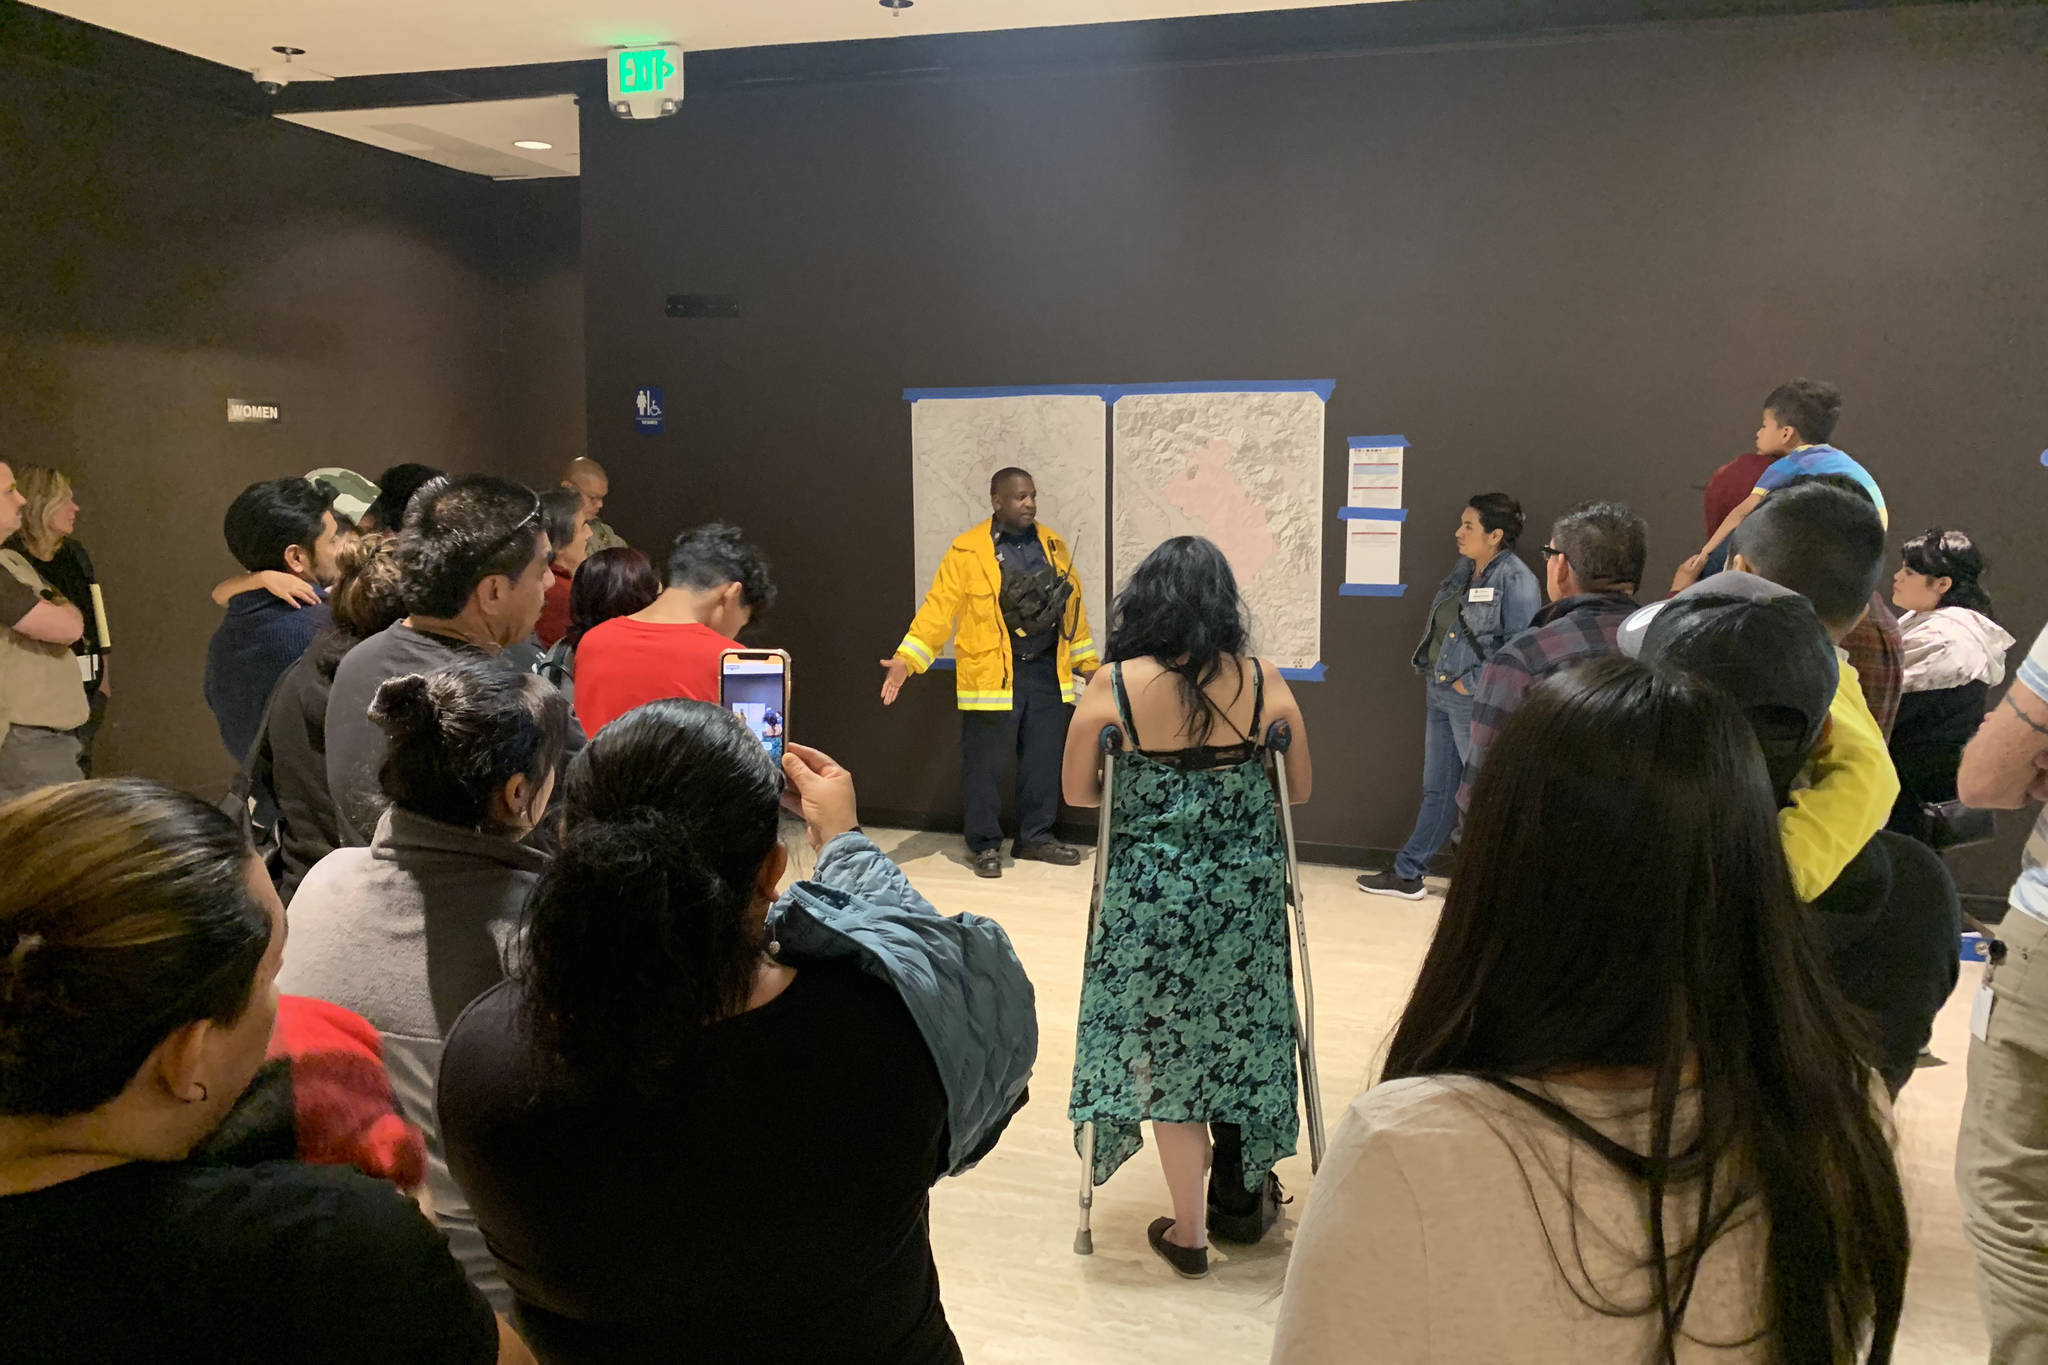 Kincade Fire evacuees finding shelter in The City